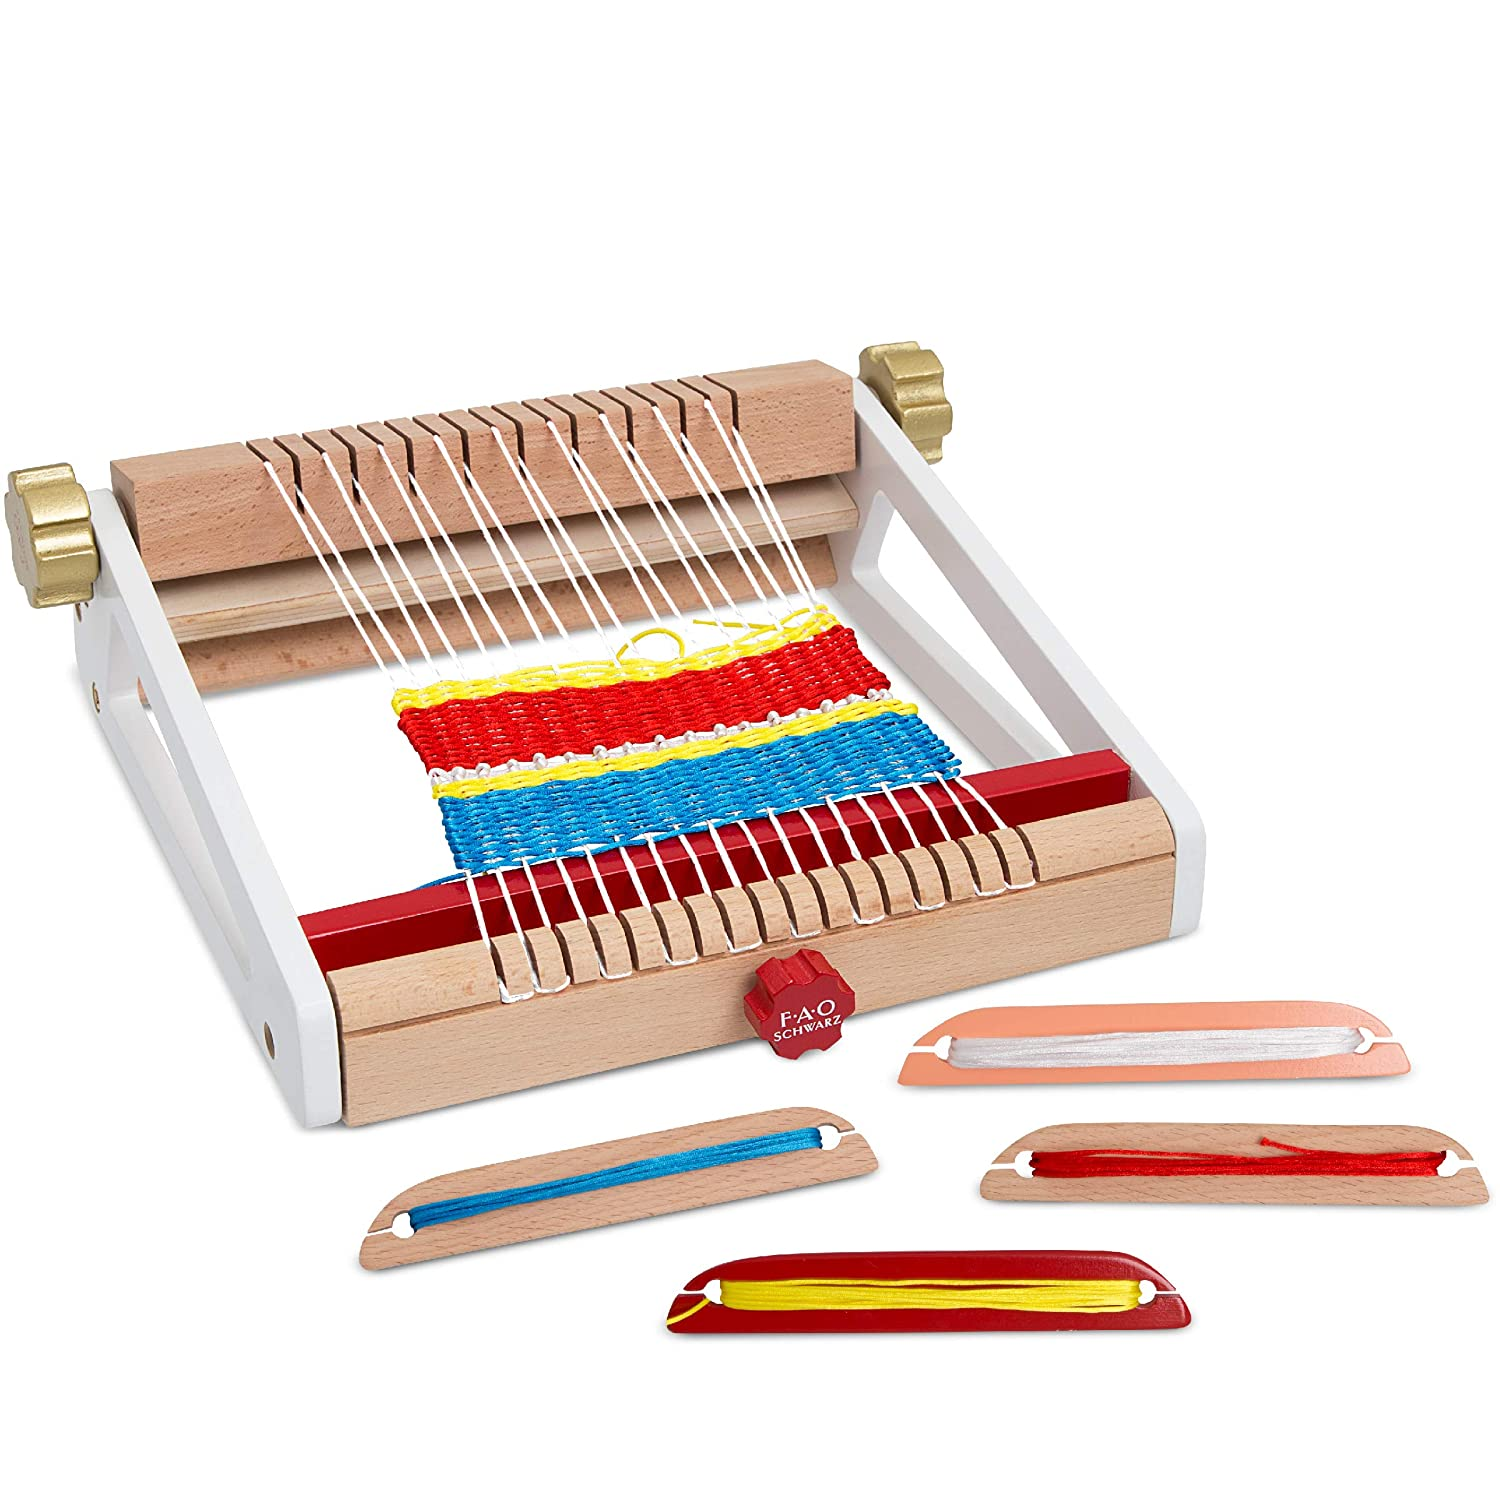 FAO SCHWARZ Kids 8-Piece Arts and Crafts Weaving Loom Set: Create Your Own Weaves and Fabric Projects with Colored String; Kit Includes Loom Frame, 4 Colored String Bundles, 3 Wooden Shuttles, Ages 4+ MerchSource